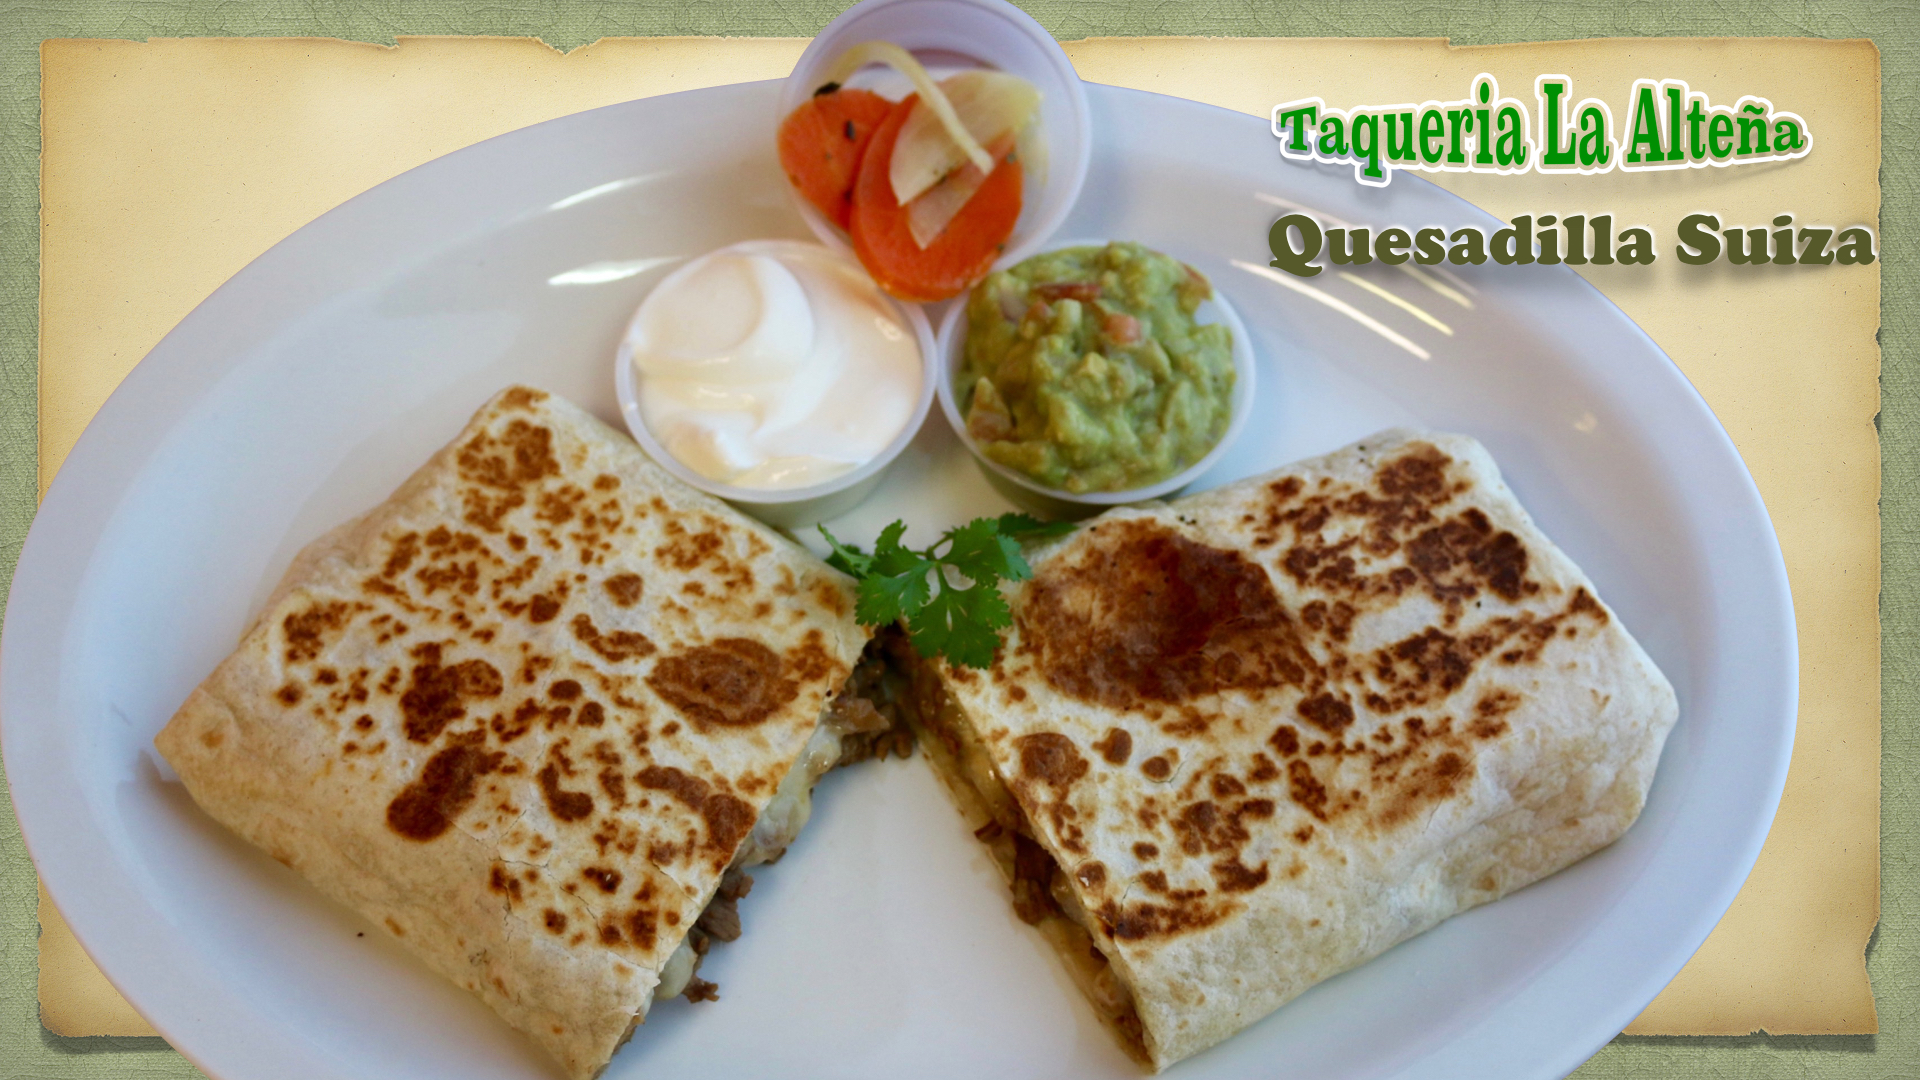 Super quesadilla